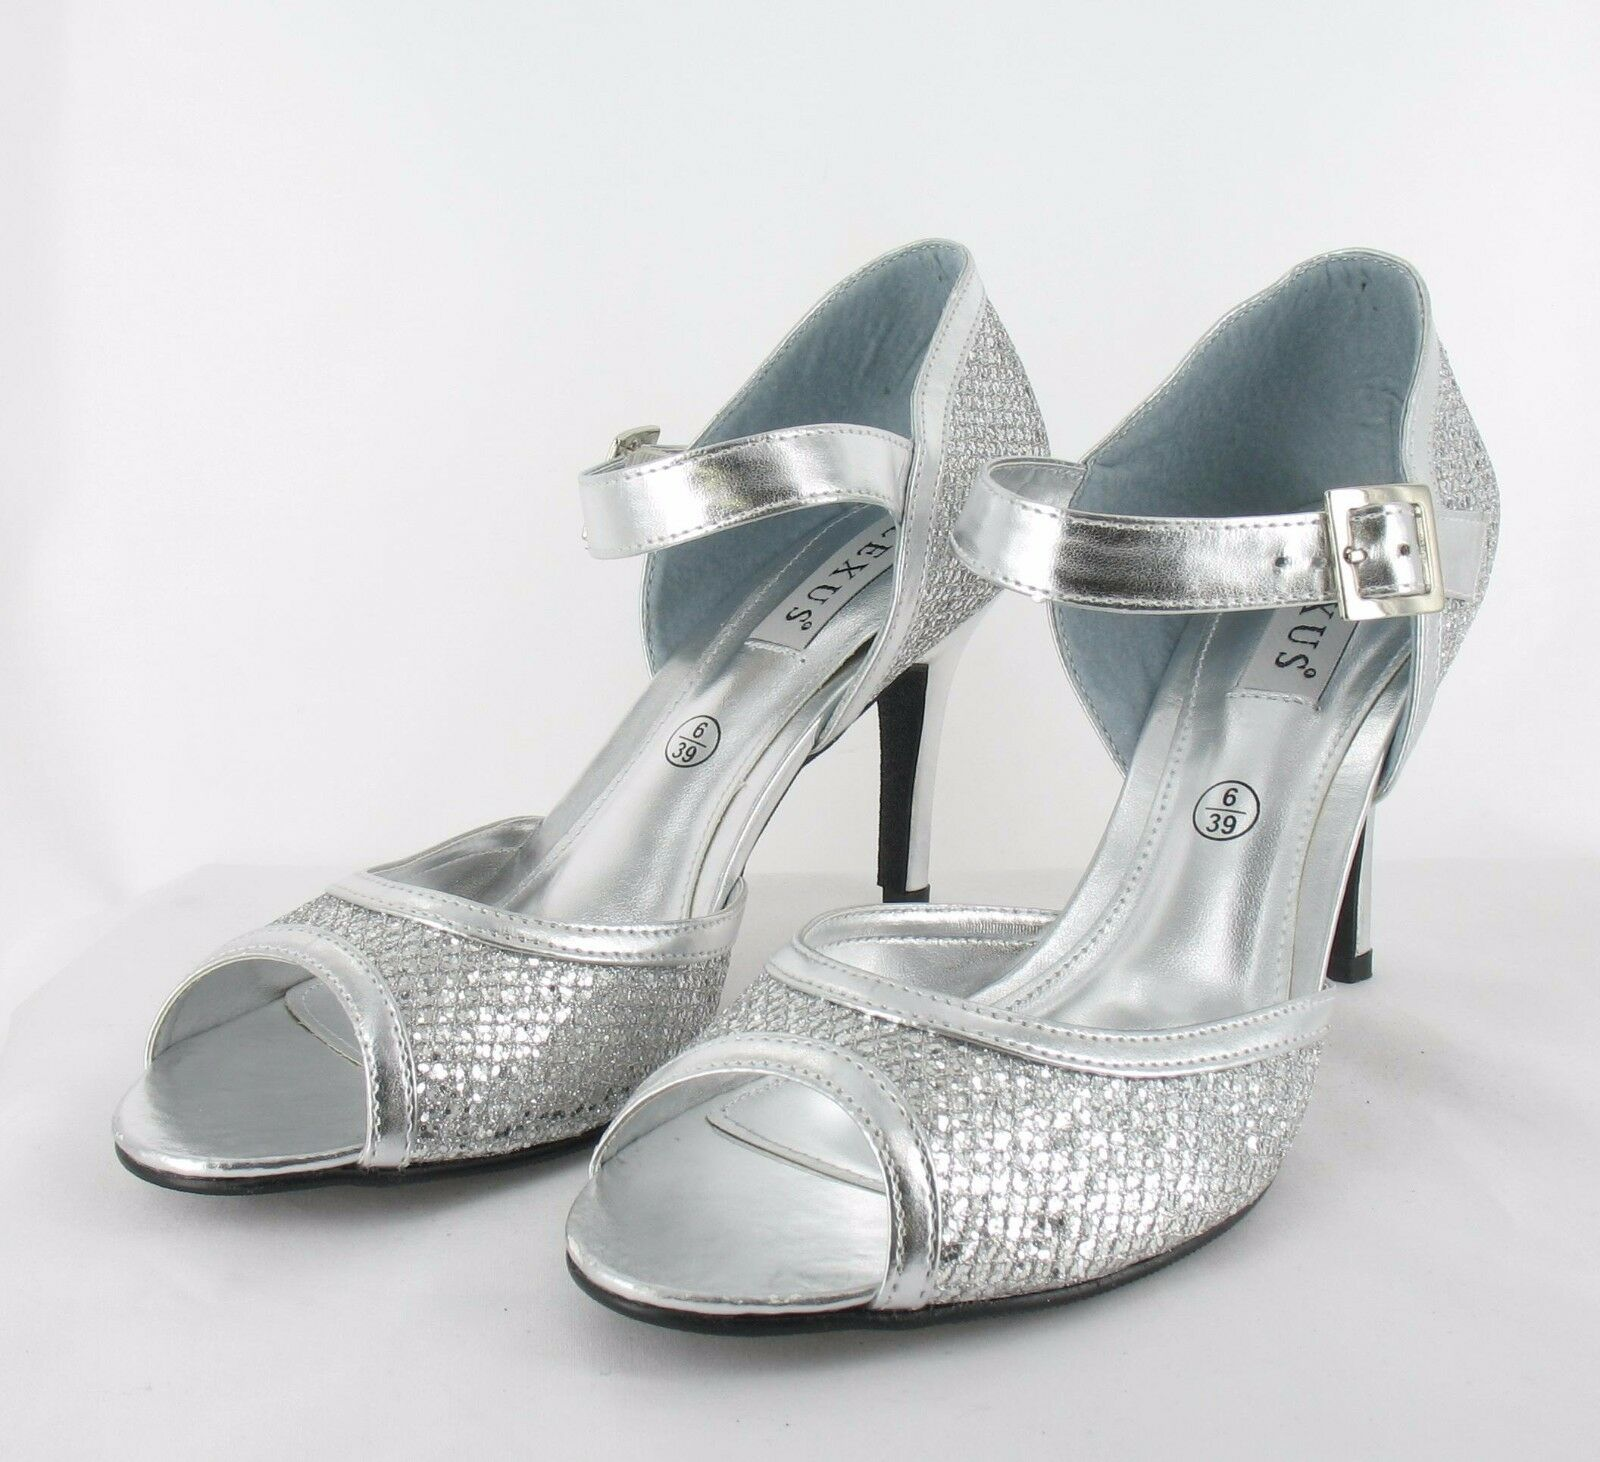 Ladies Shoes Size 7 Silver Party Prom Wedding Bridal (S6/6/17-4)